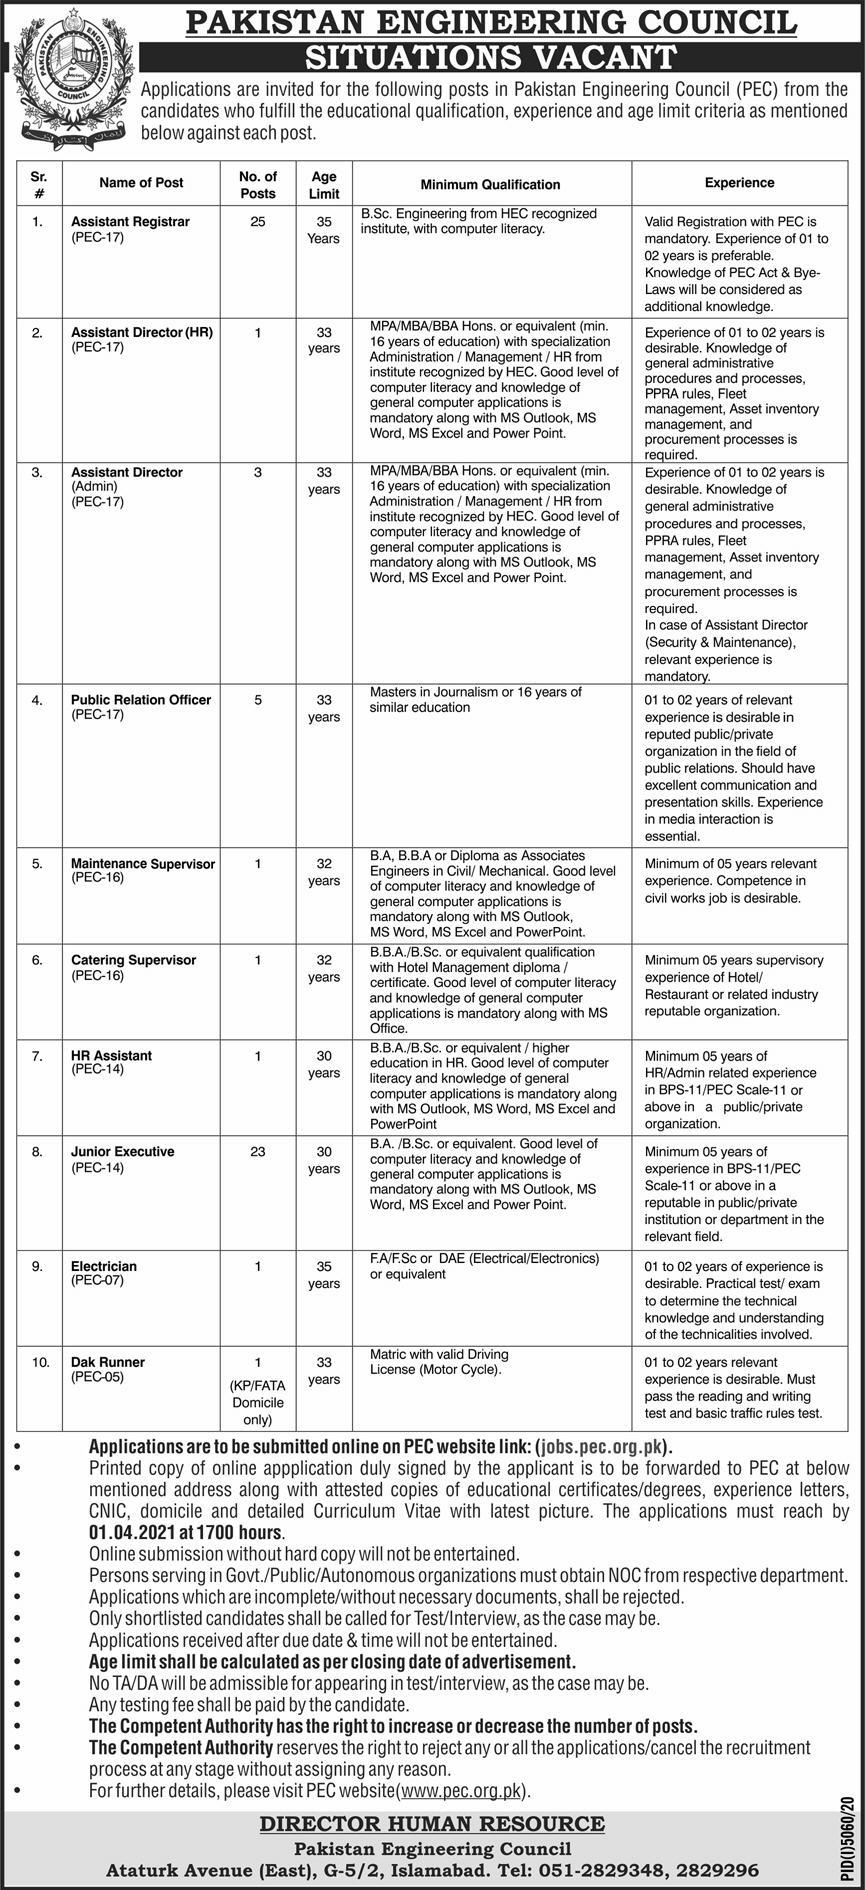 government,pakistan engineering council pec islamabad,assistant registrar, assistant director, public relation officer, maintenance supervisor, catering supervisor, hr assistant, junior executive, electrician, dak runner,latest jobs,last date,requirements,application form,how to apply, jobs 2021,